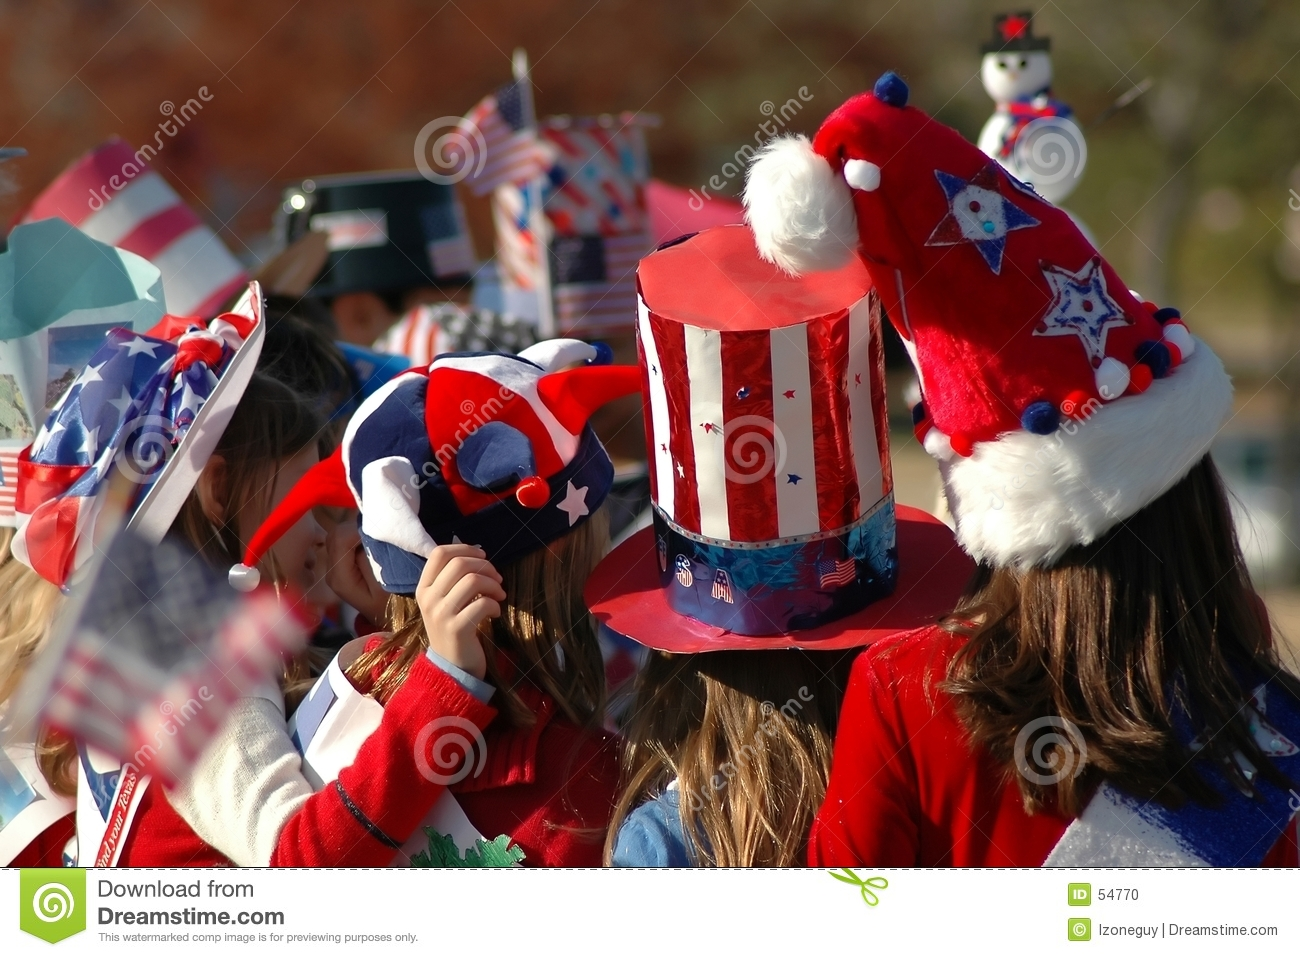 Download Chapeaux Rouges, Blancs Et Bleus Photo stock - Image du raies, chapeaux: 54770